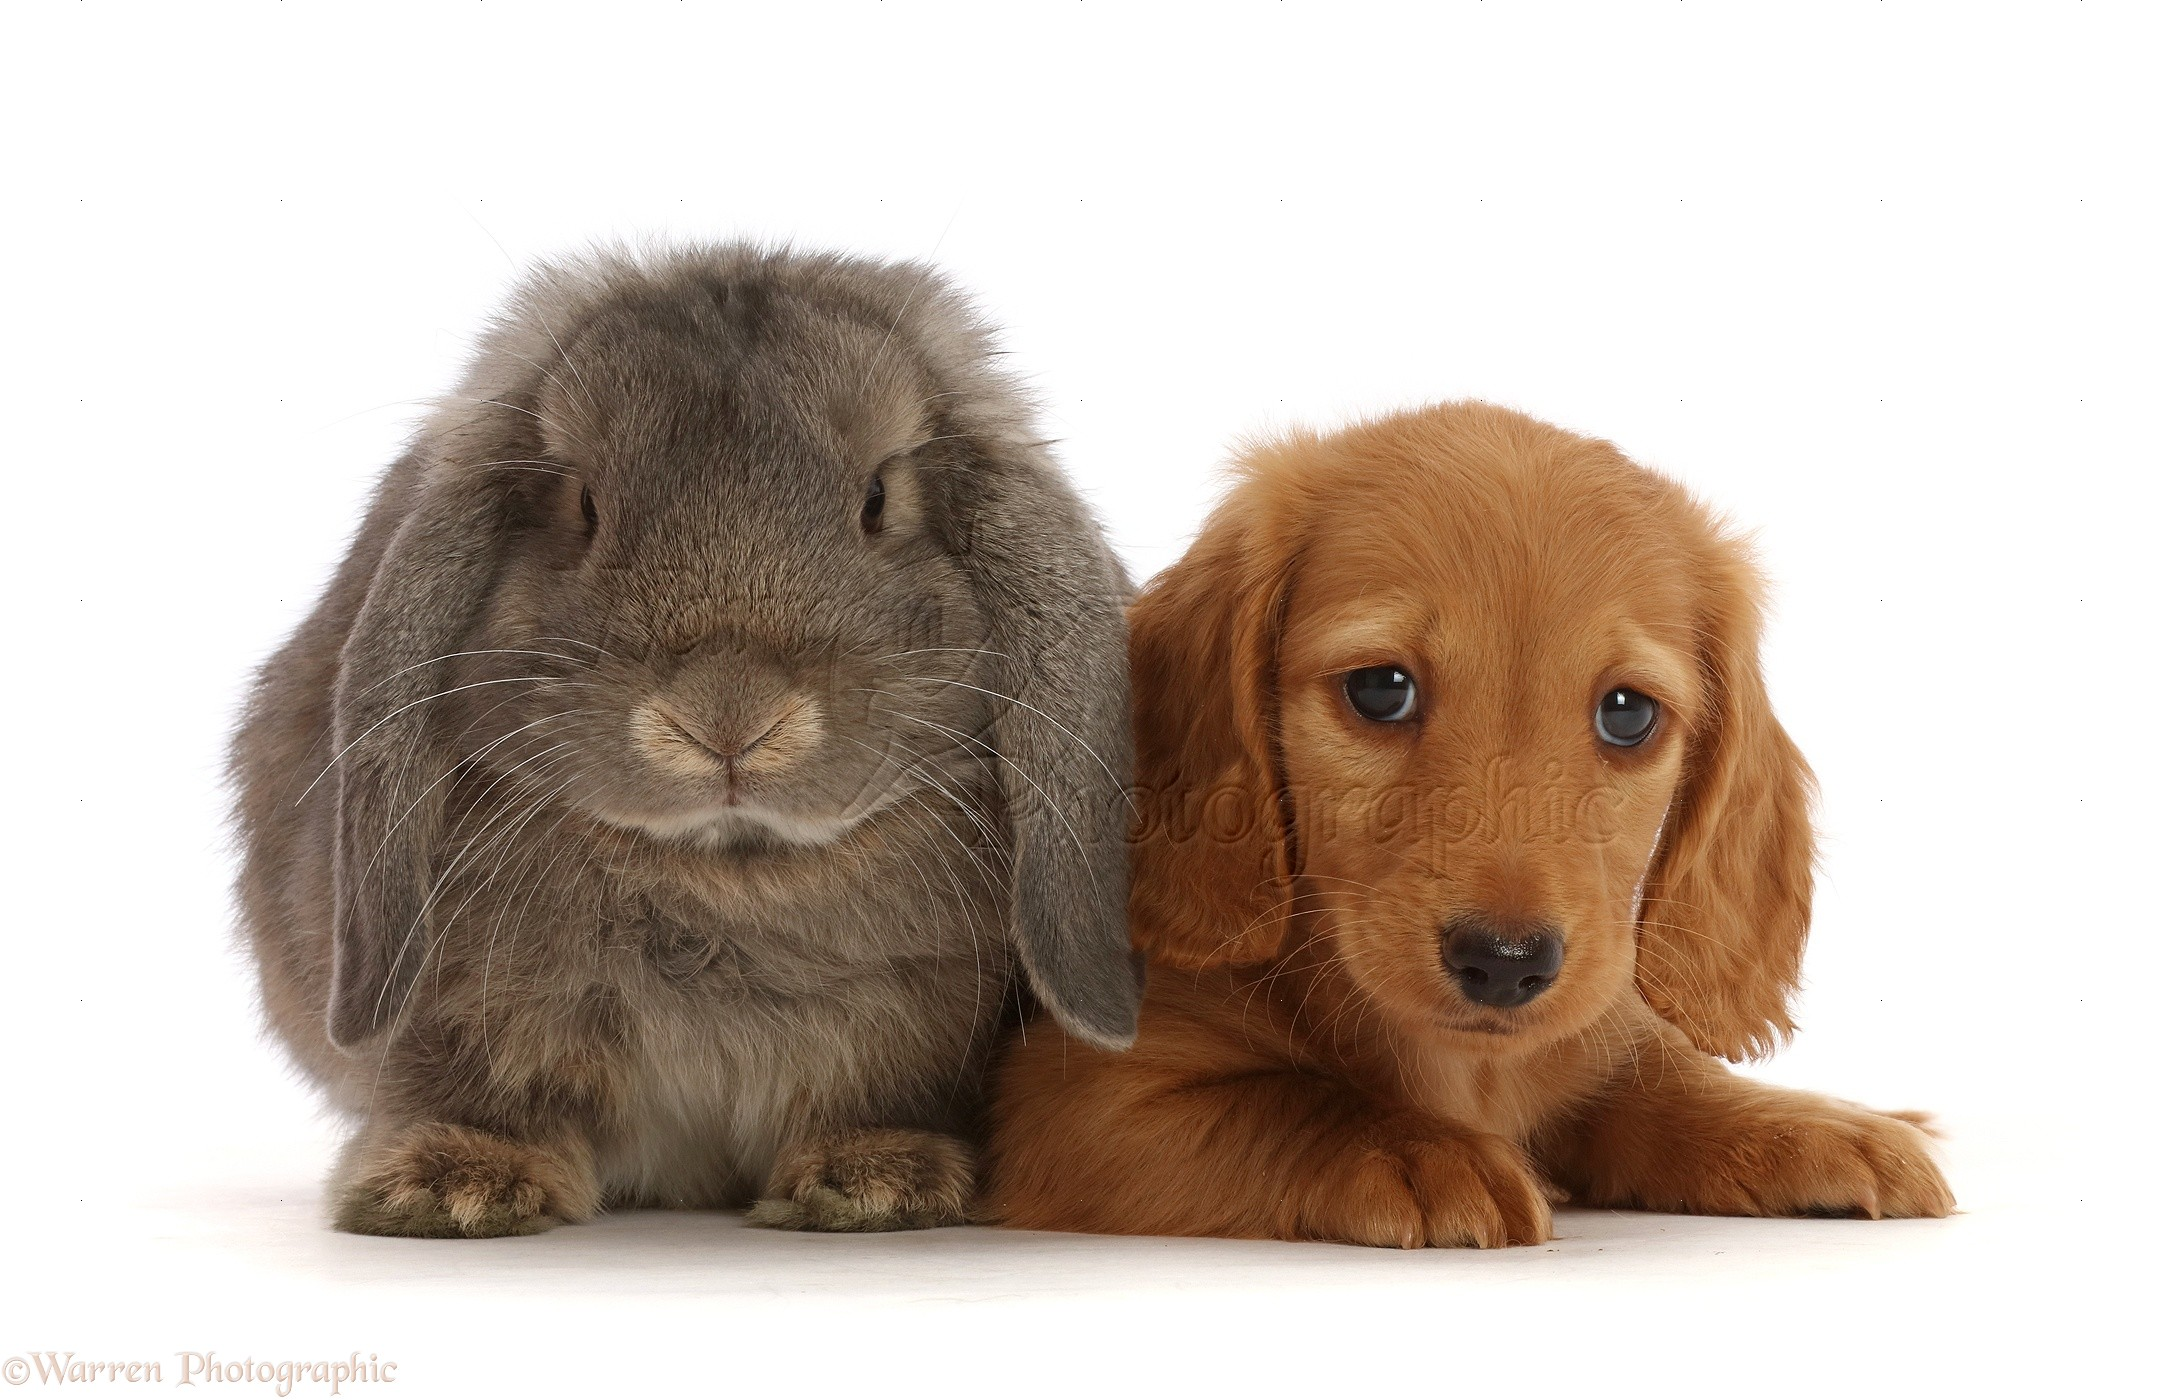 Pets Cream Dachshund Puppy 7 Weeks Old And Grey Lop Bunny Photo Wp48004